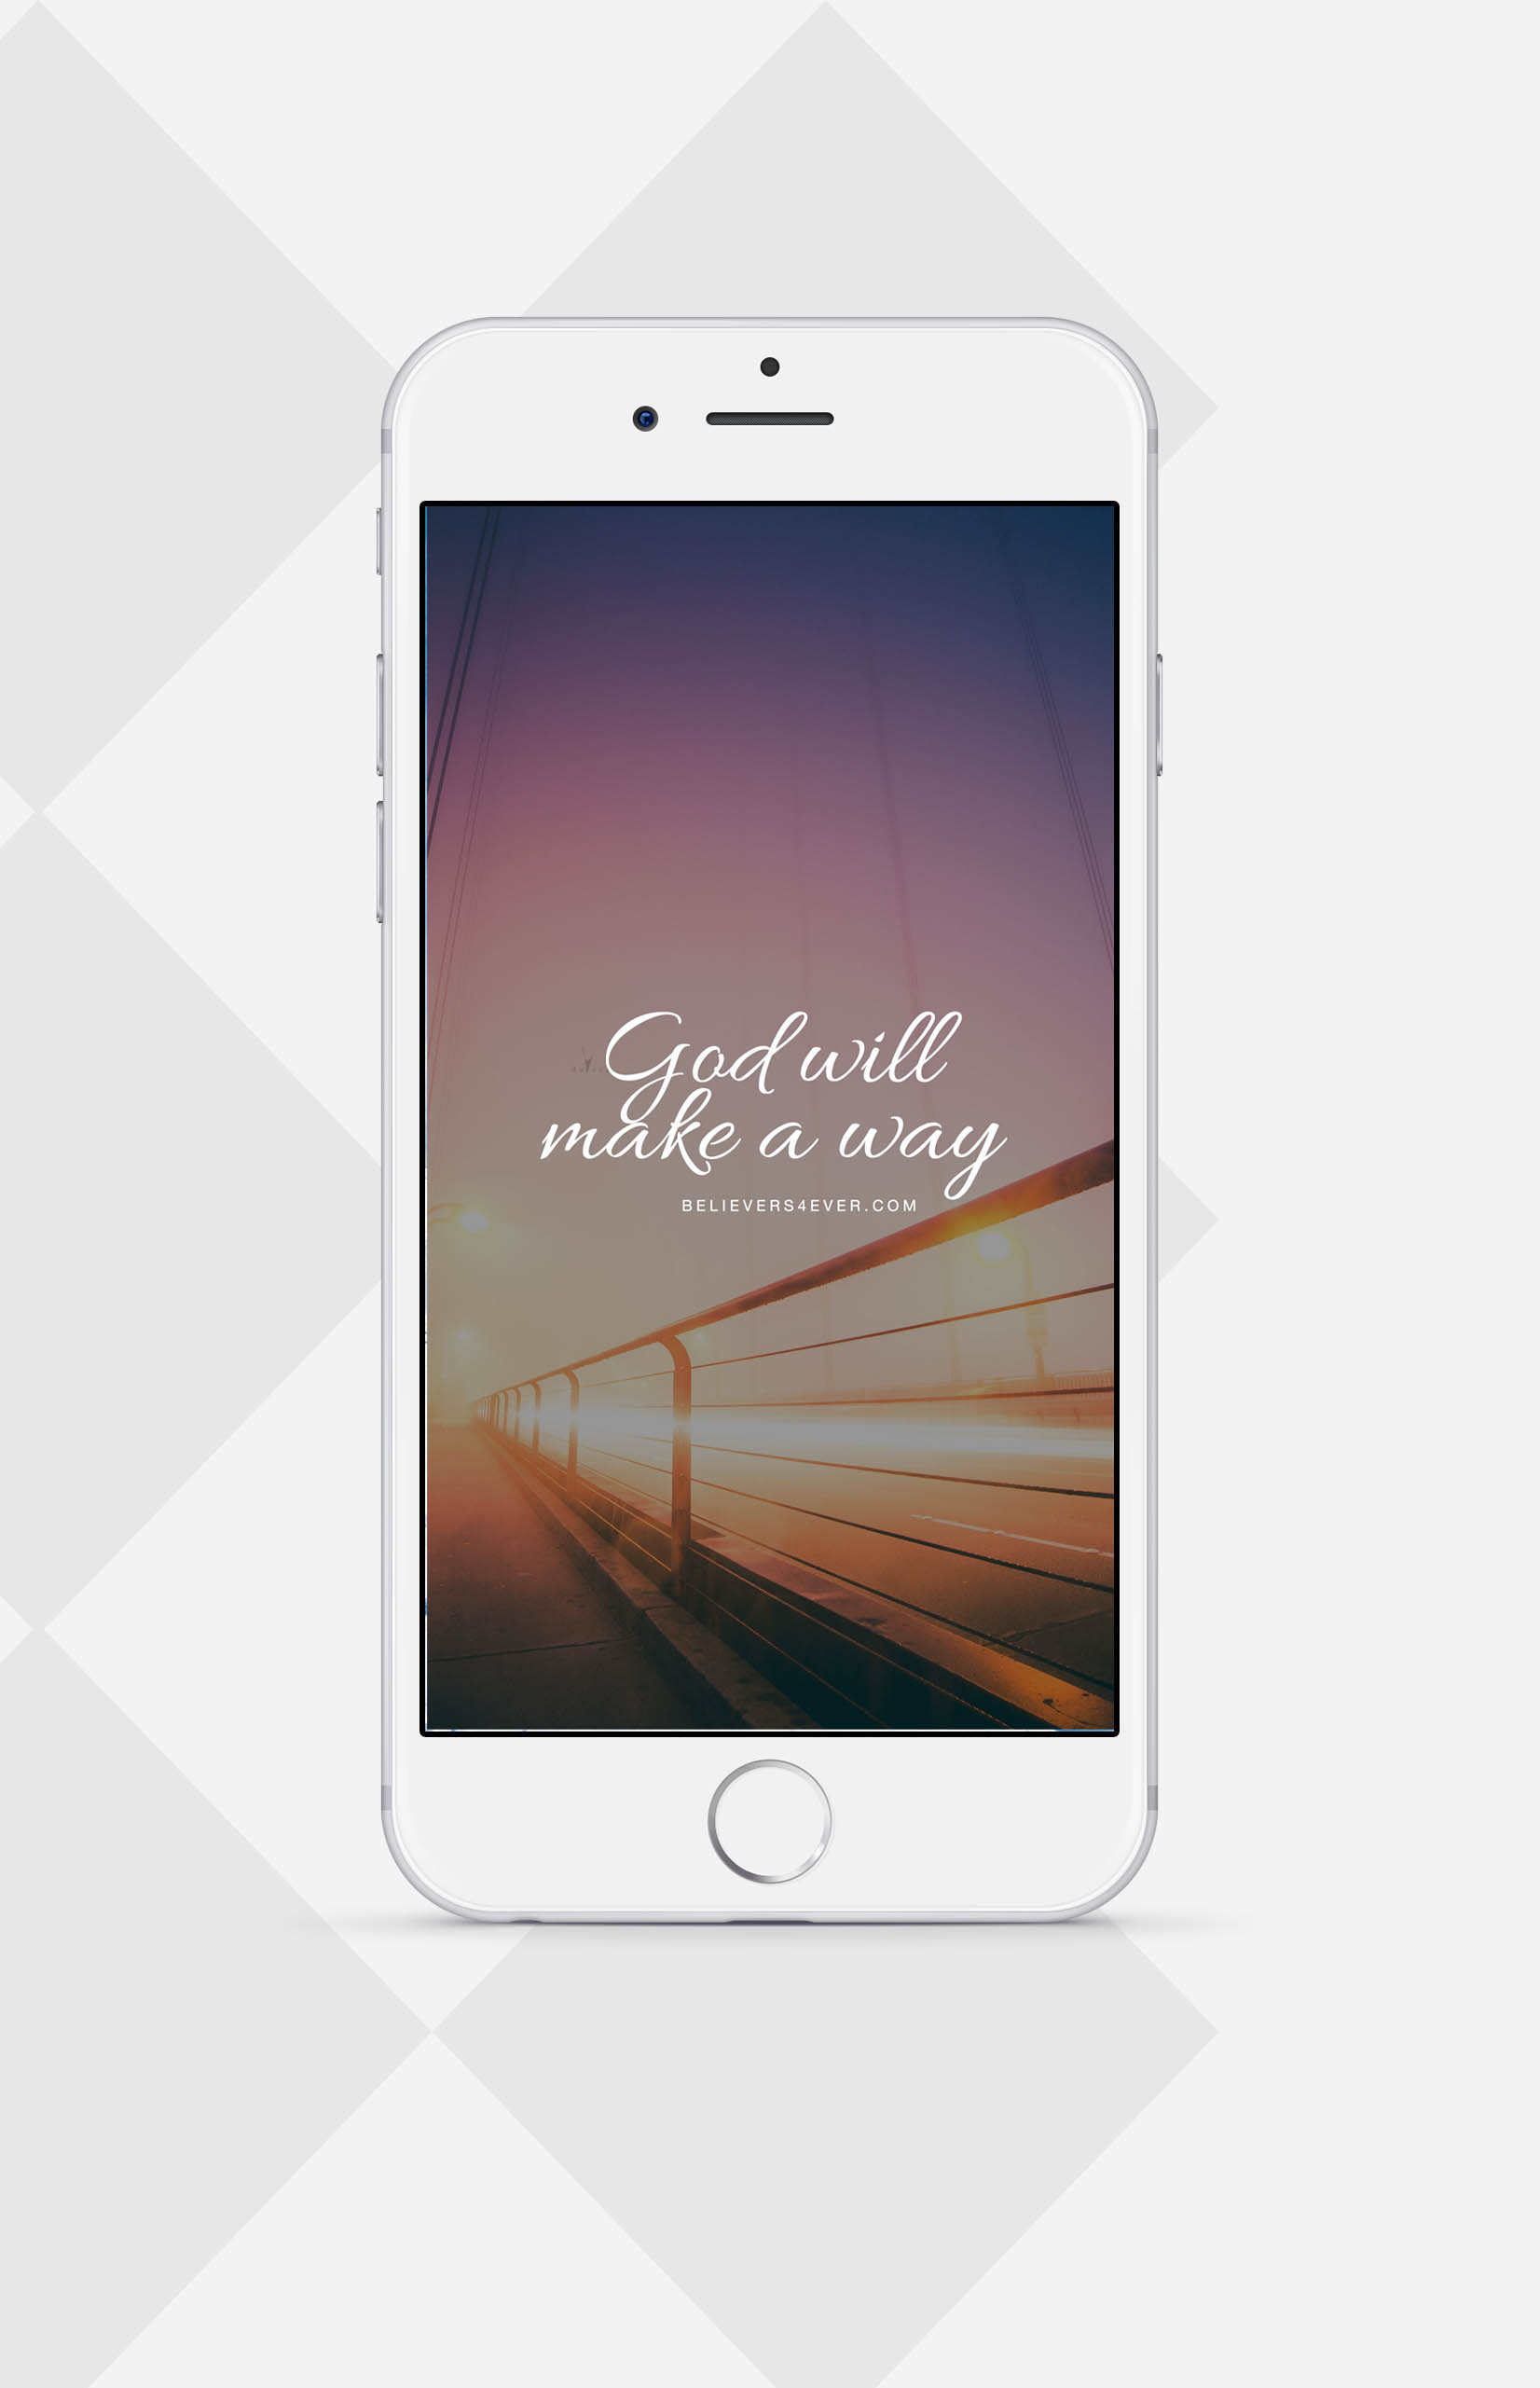 God will make a way mobile wallpaper